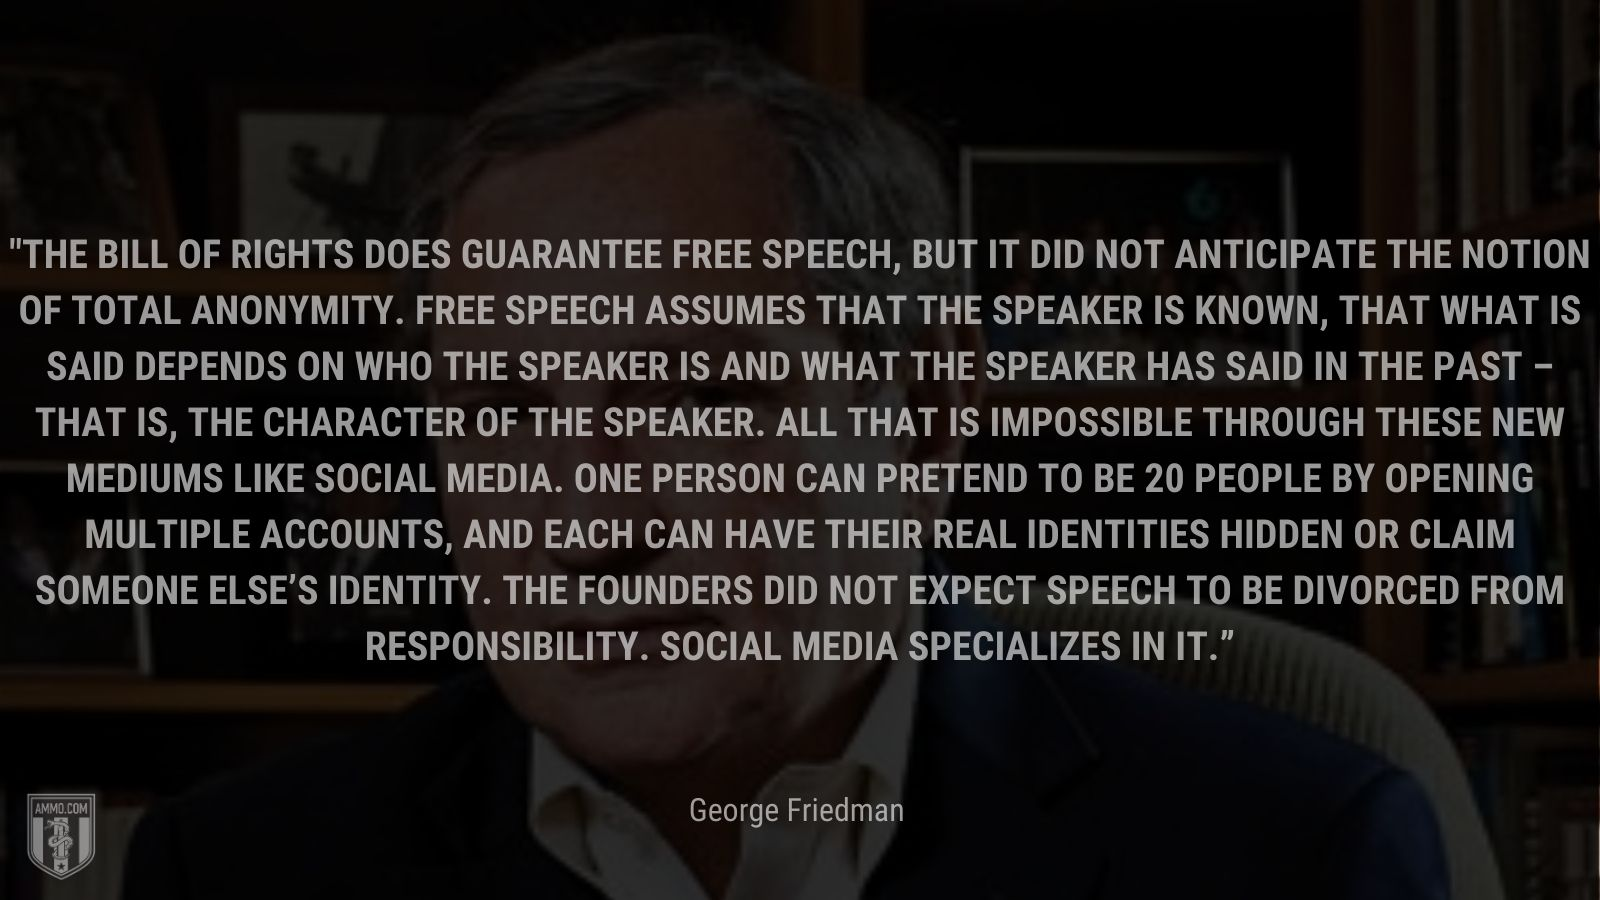 """""""The Bill of Rights does guarantee free speech, but it did not anticipate the notion of total anonymity. Free speech assumes that the speaker is known, that what is said depends on who the speaker is and what the speaker has said in the past – that is, the character of the speaker. All that is impossible through these new mediums like social media. One person can pretend to be 20 people by opening multiple accounts, and each can have their real identities hidden or claim someone else's identity. The Founders did not expect speech to be divorced from responsibility. Social media specializes in it."""" - George Friedman"""